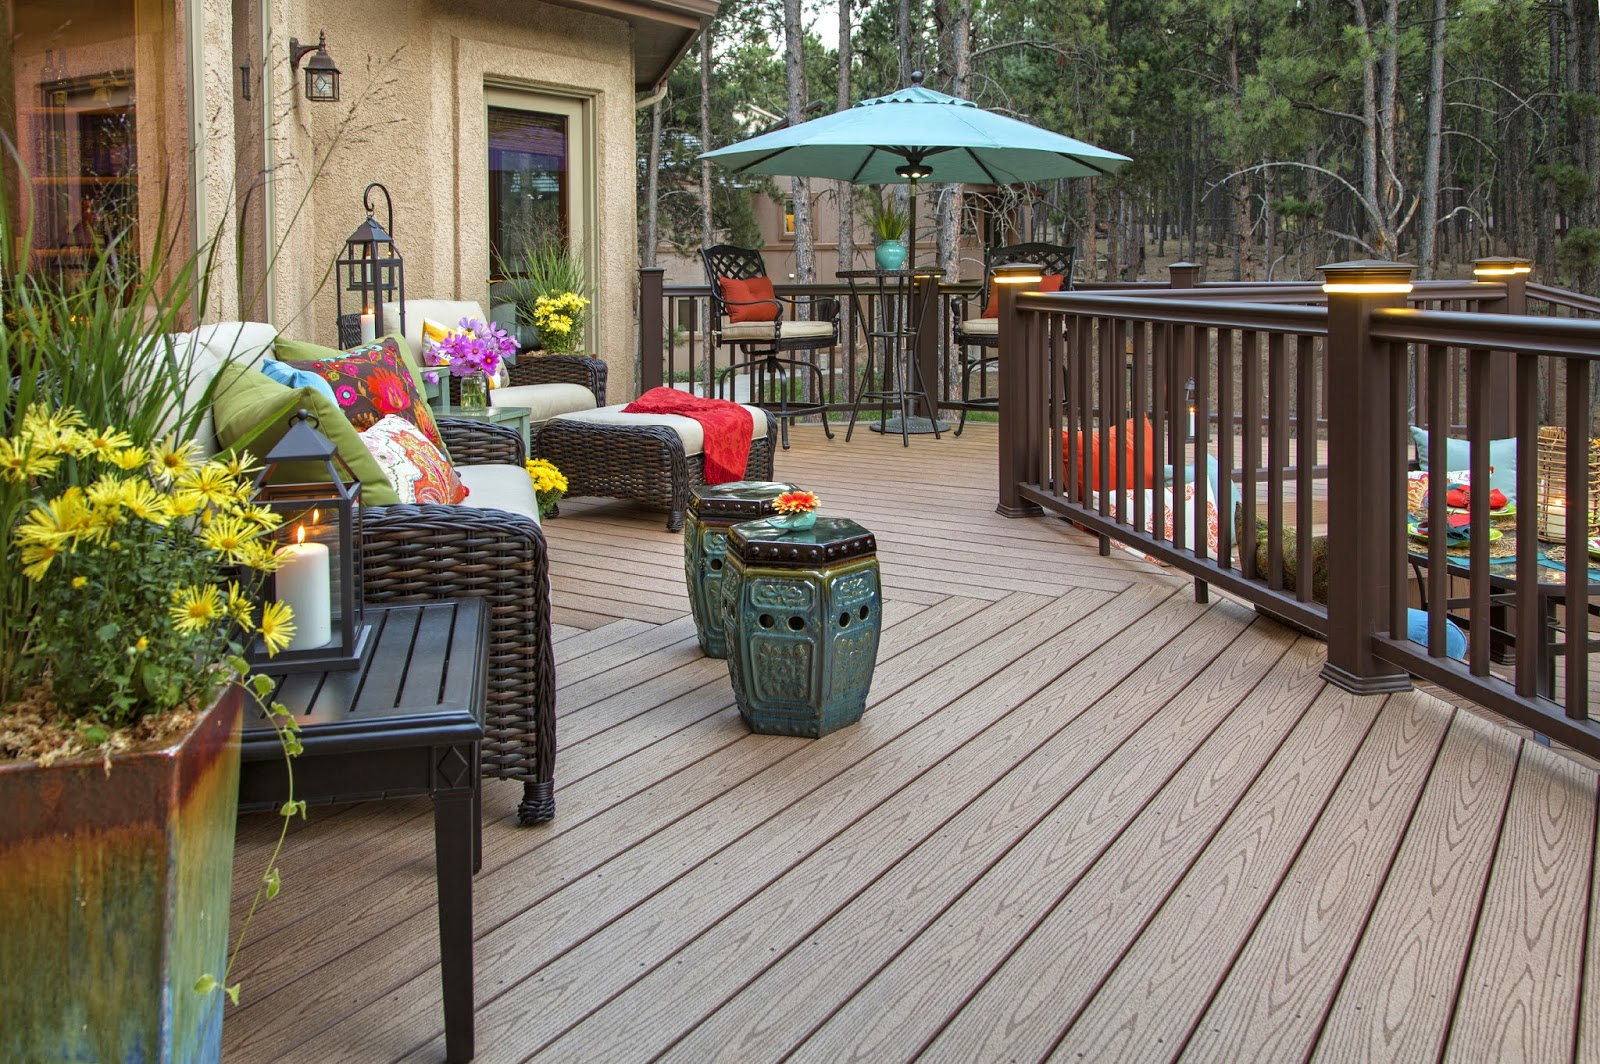 Maintain composite decking qualities with Americhem custom color masterbatches.